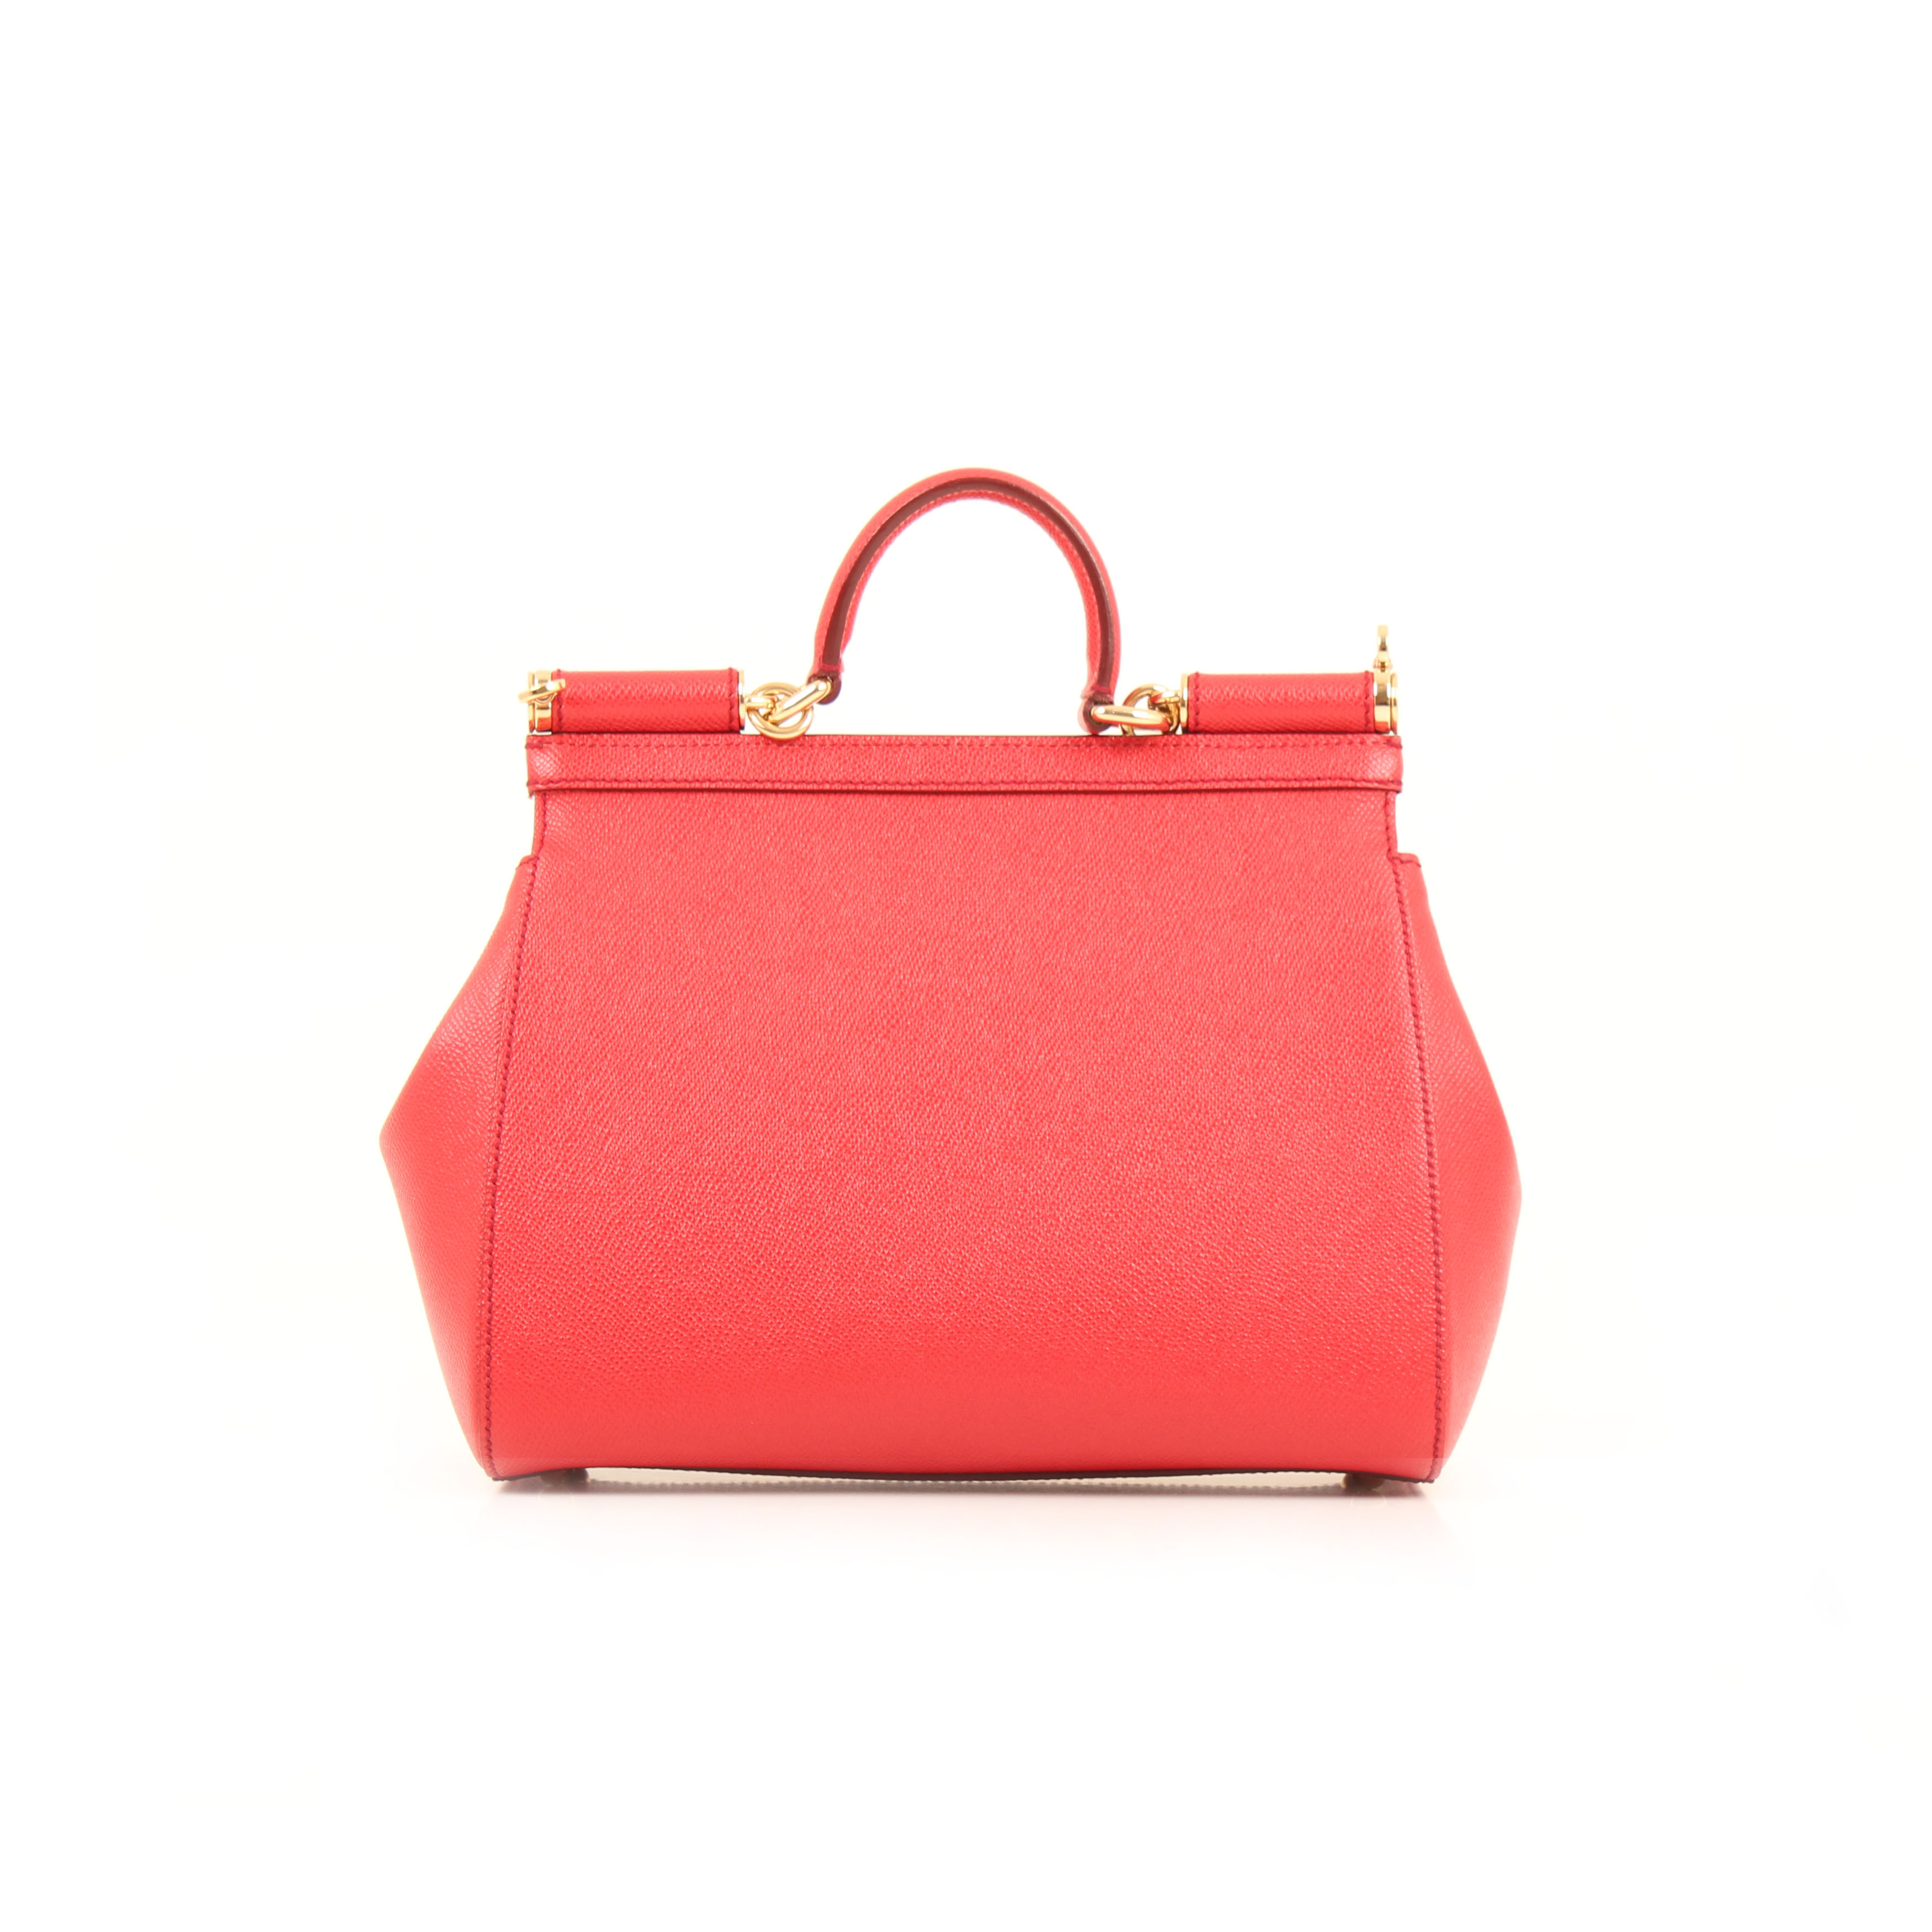 dolce gabbana sicily bag red grained leather back